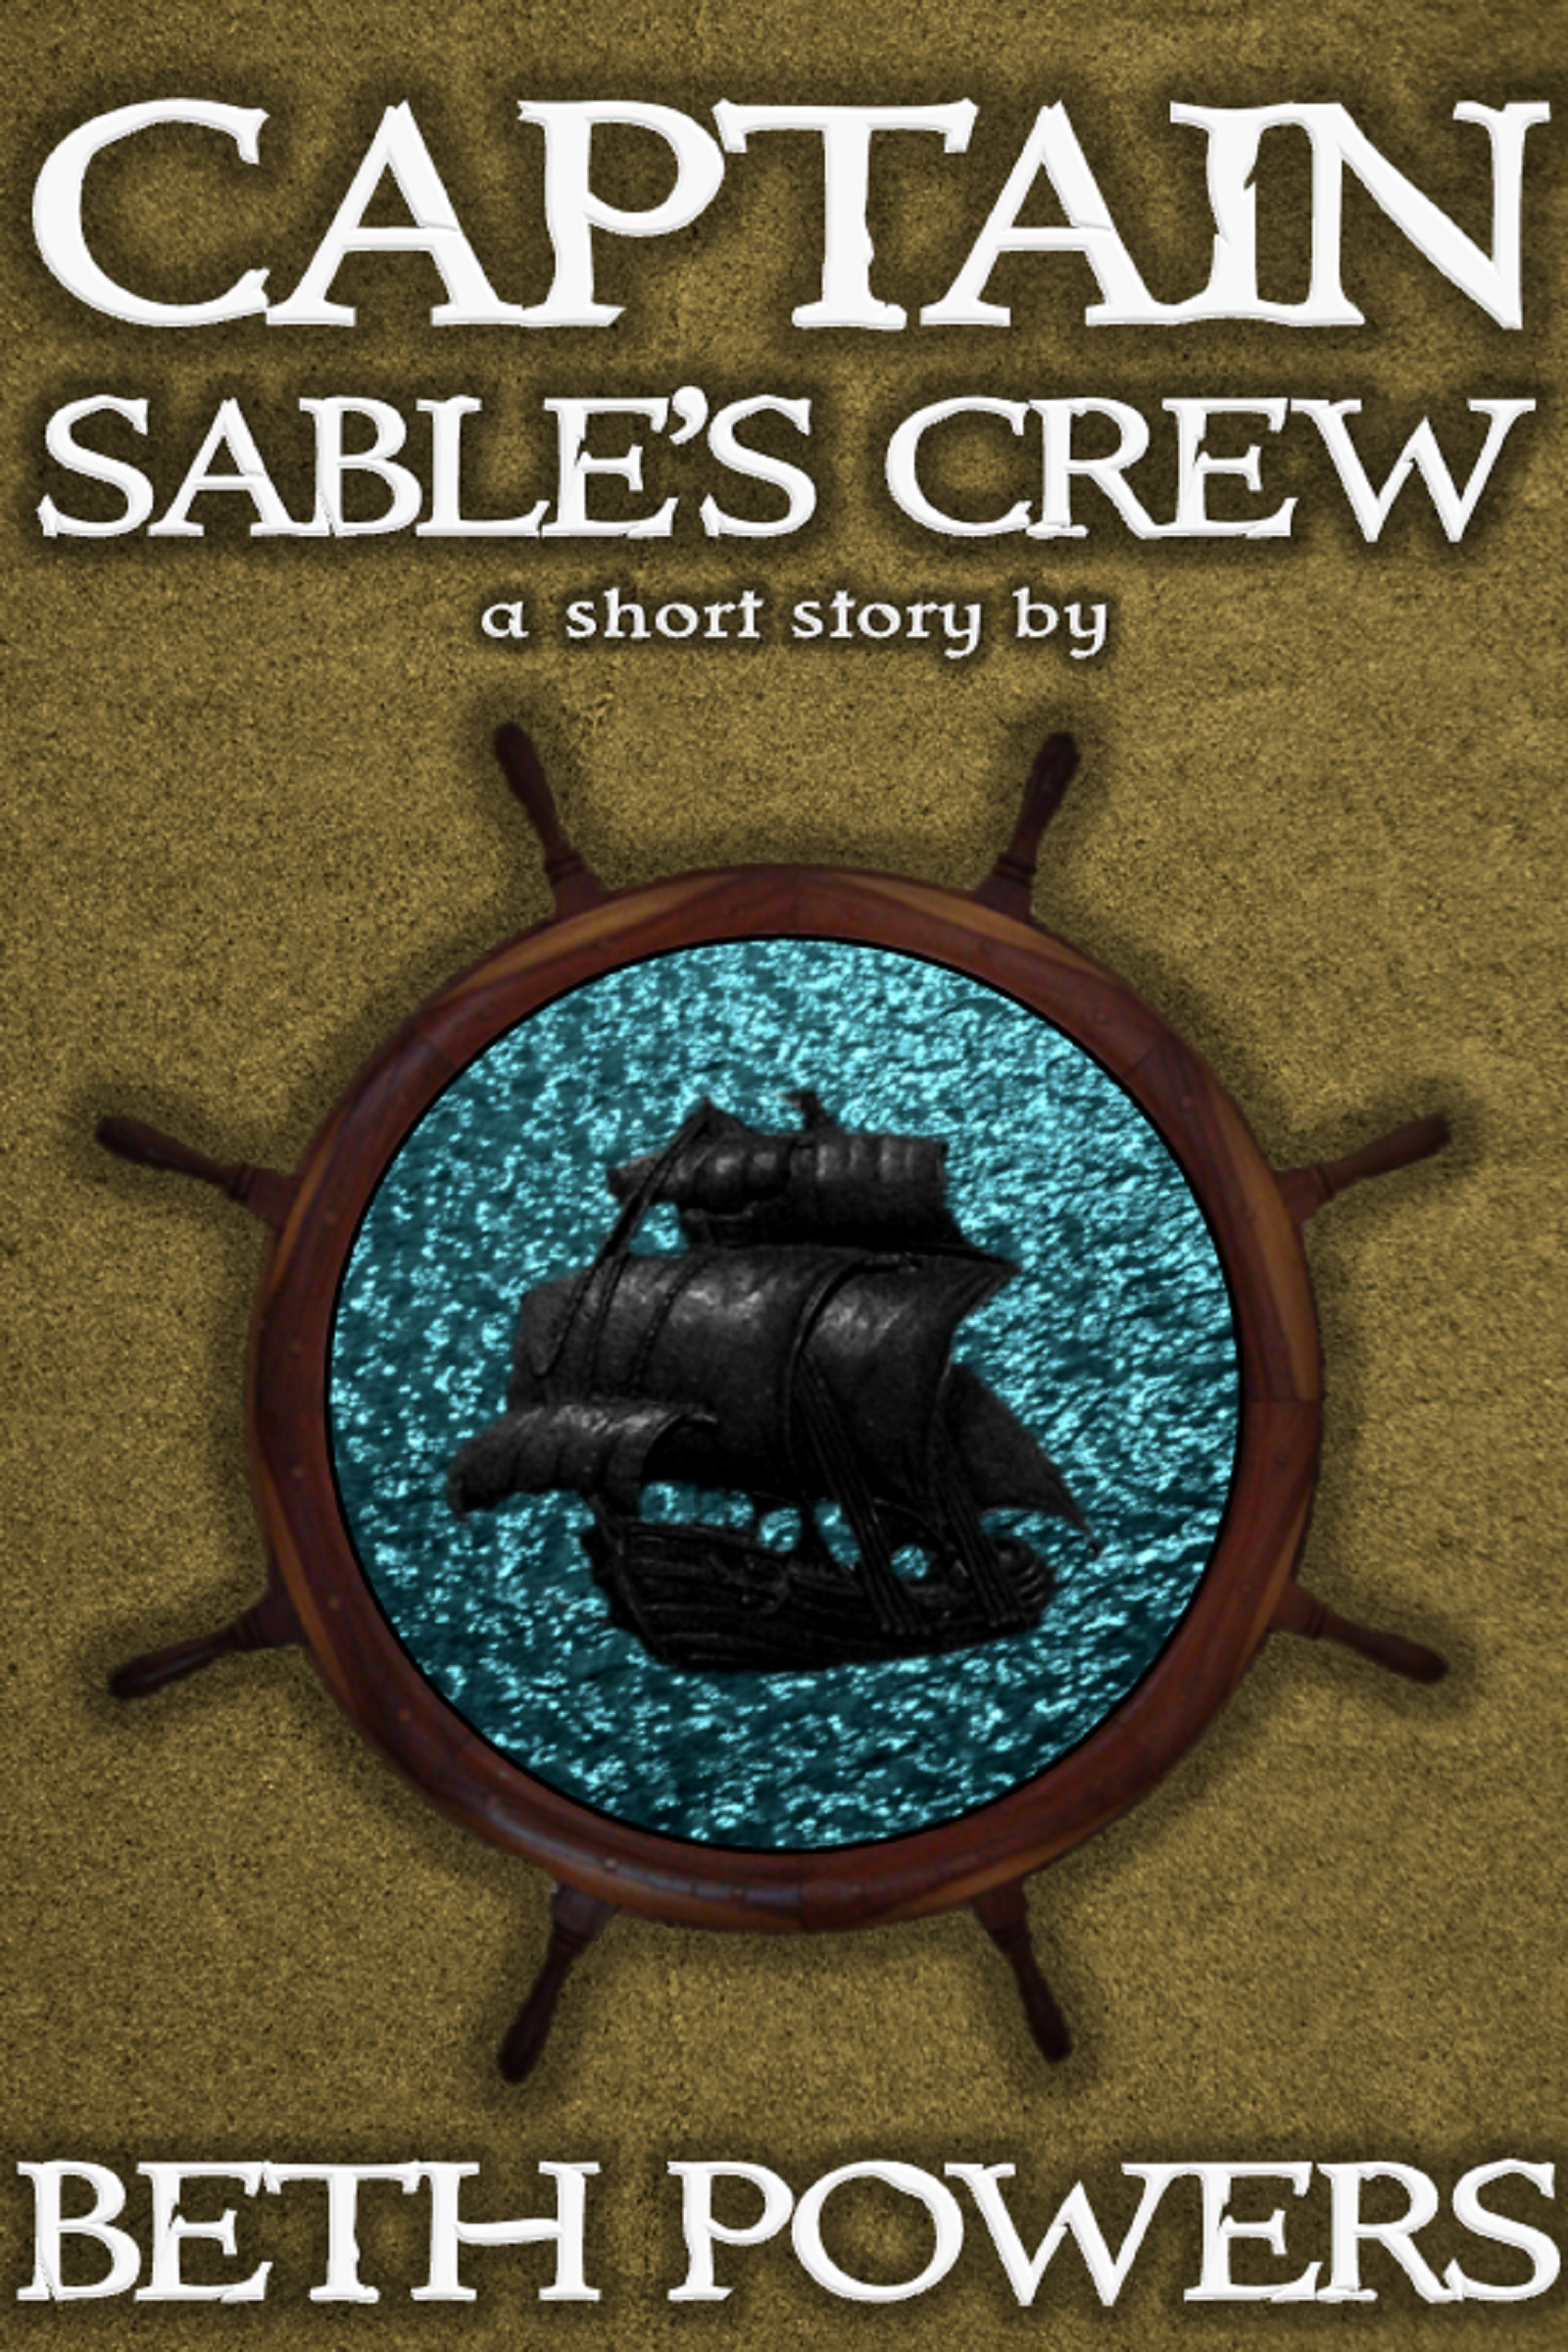 Captain Sable's Crew